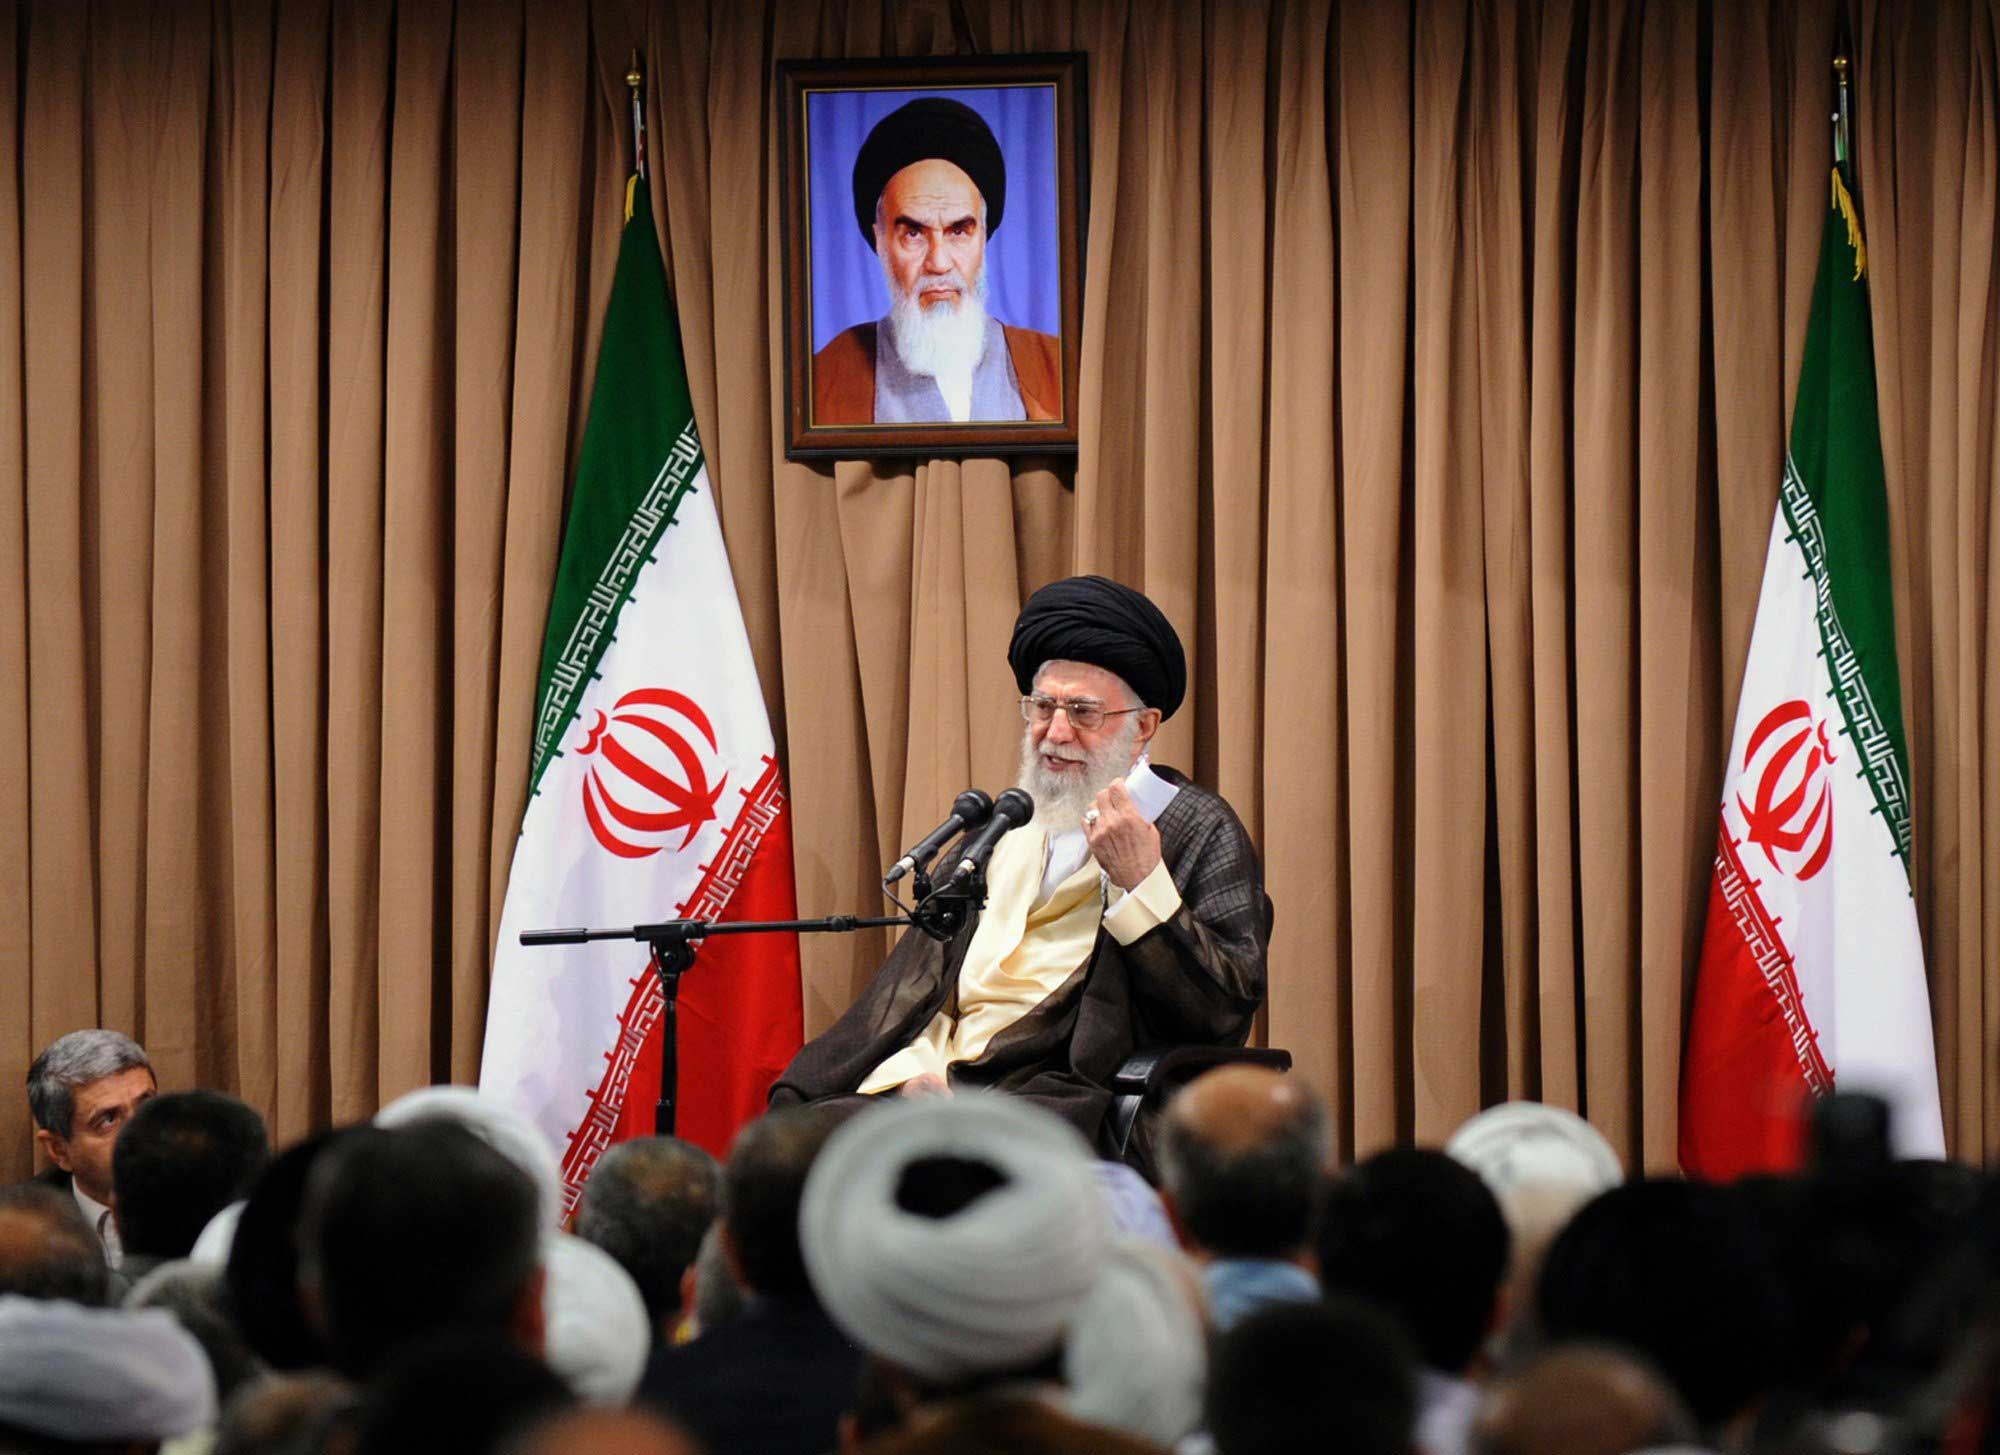 Iran's supreme leader, Ayatollah Ali Khamenei, addresses country's top officials during a meeting  in Tehran in which he restated his country's red lines for a nuclear deal with world powers on June 23, 2015.